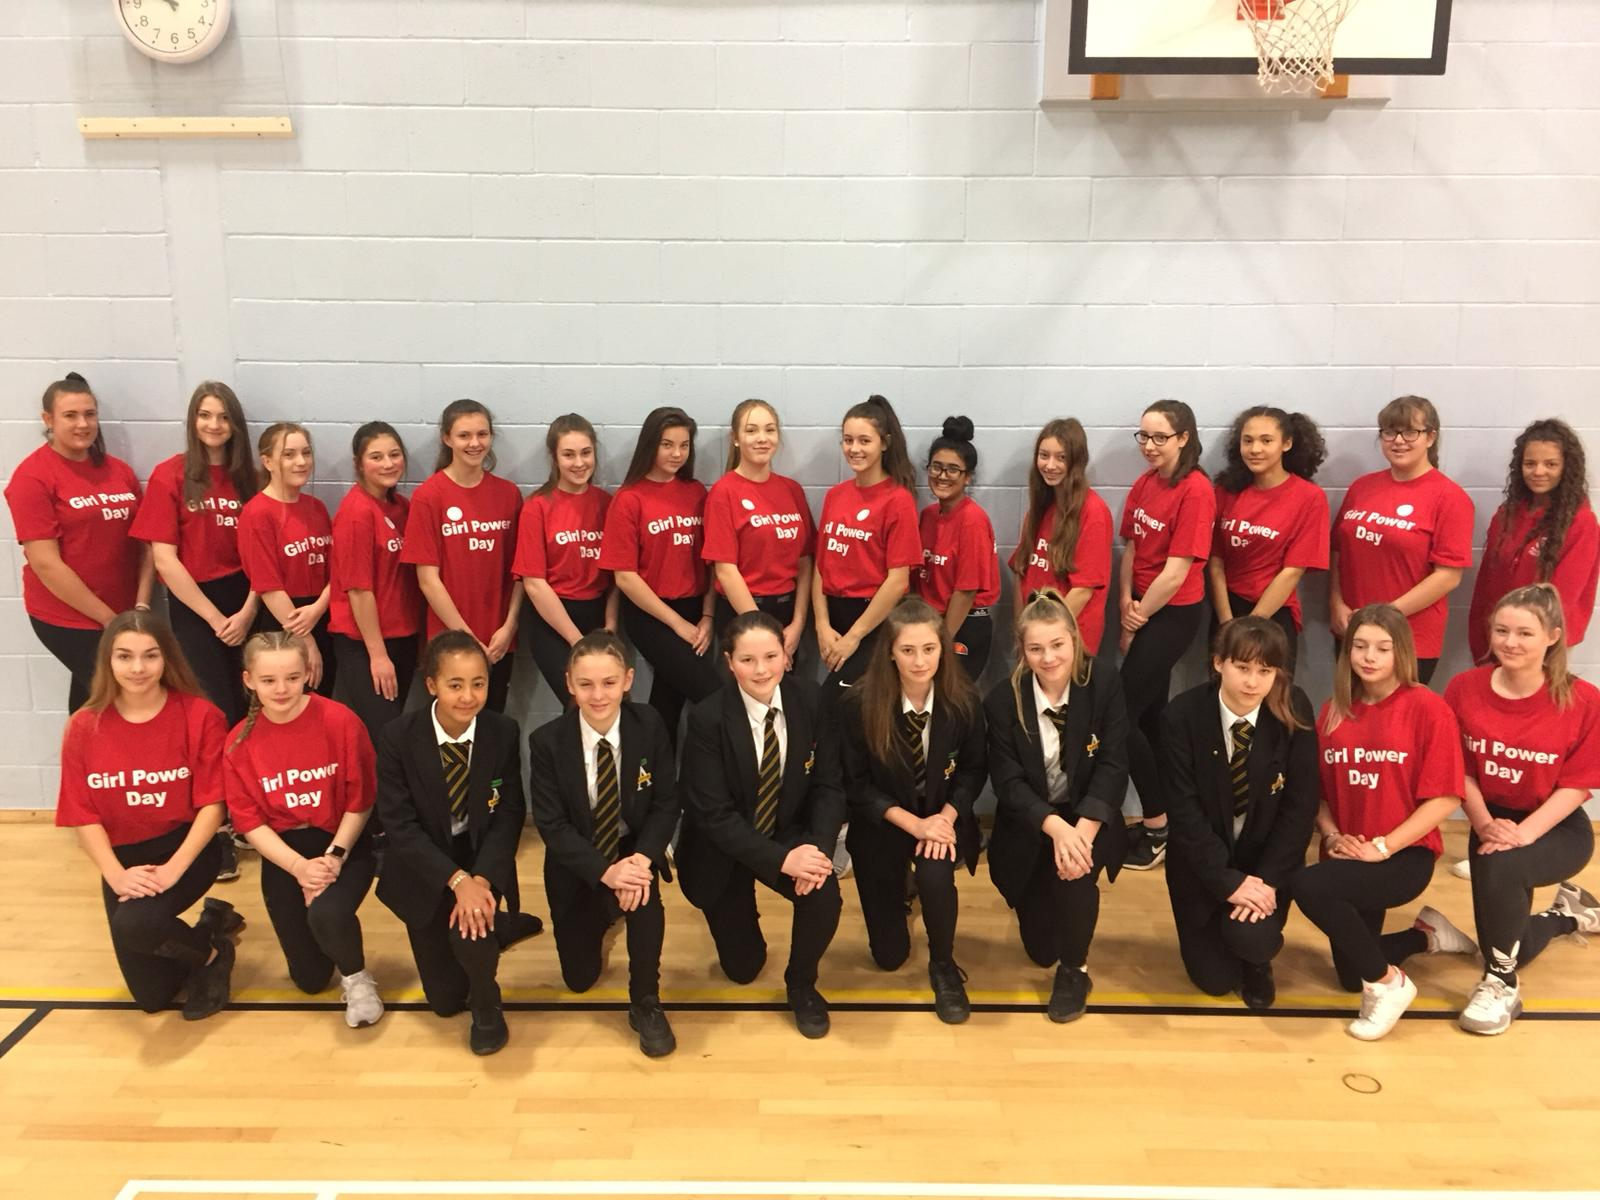 Aston Academy's Year 10 sports leaders and the school's sporting stars. Penguin PR: public relations, media and communications